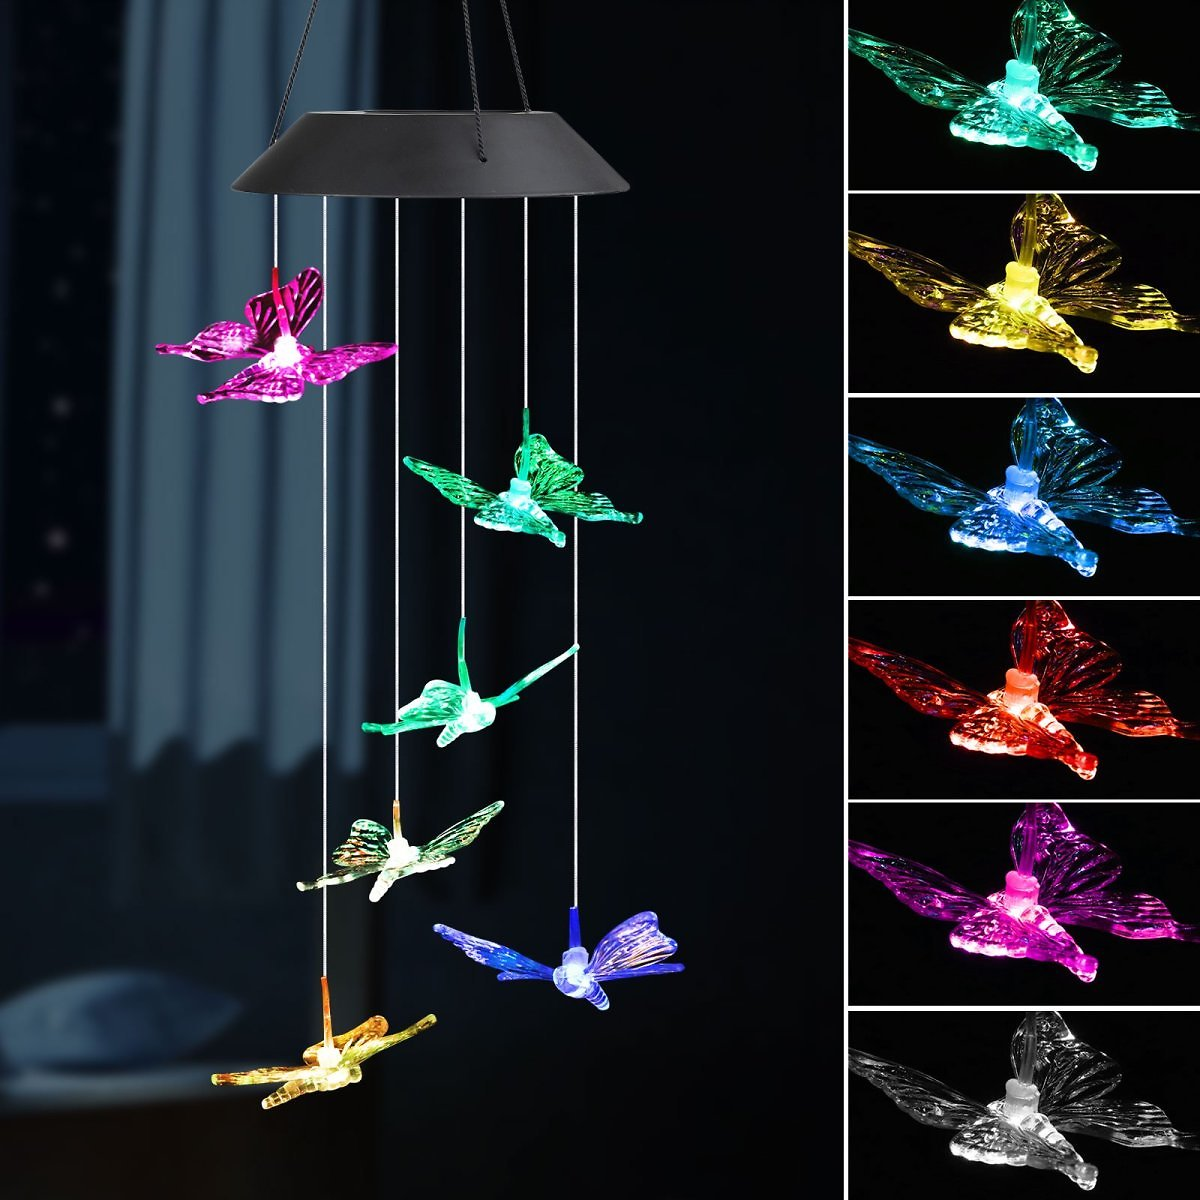 EEEkit LED Solar Butterfly Wind Chimes Outdoor - Waterproof Solar Powered LED Changing Light Color 6 Butterflies Mobile Romantic